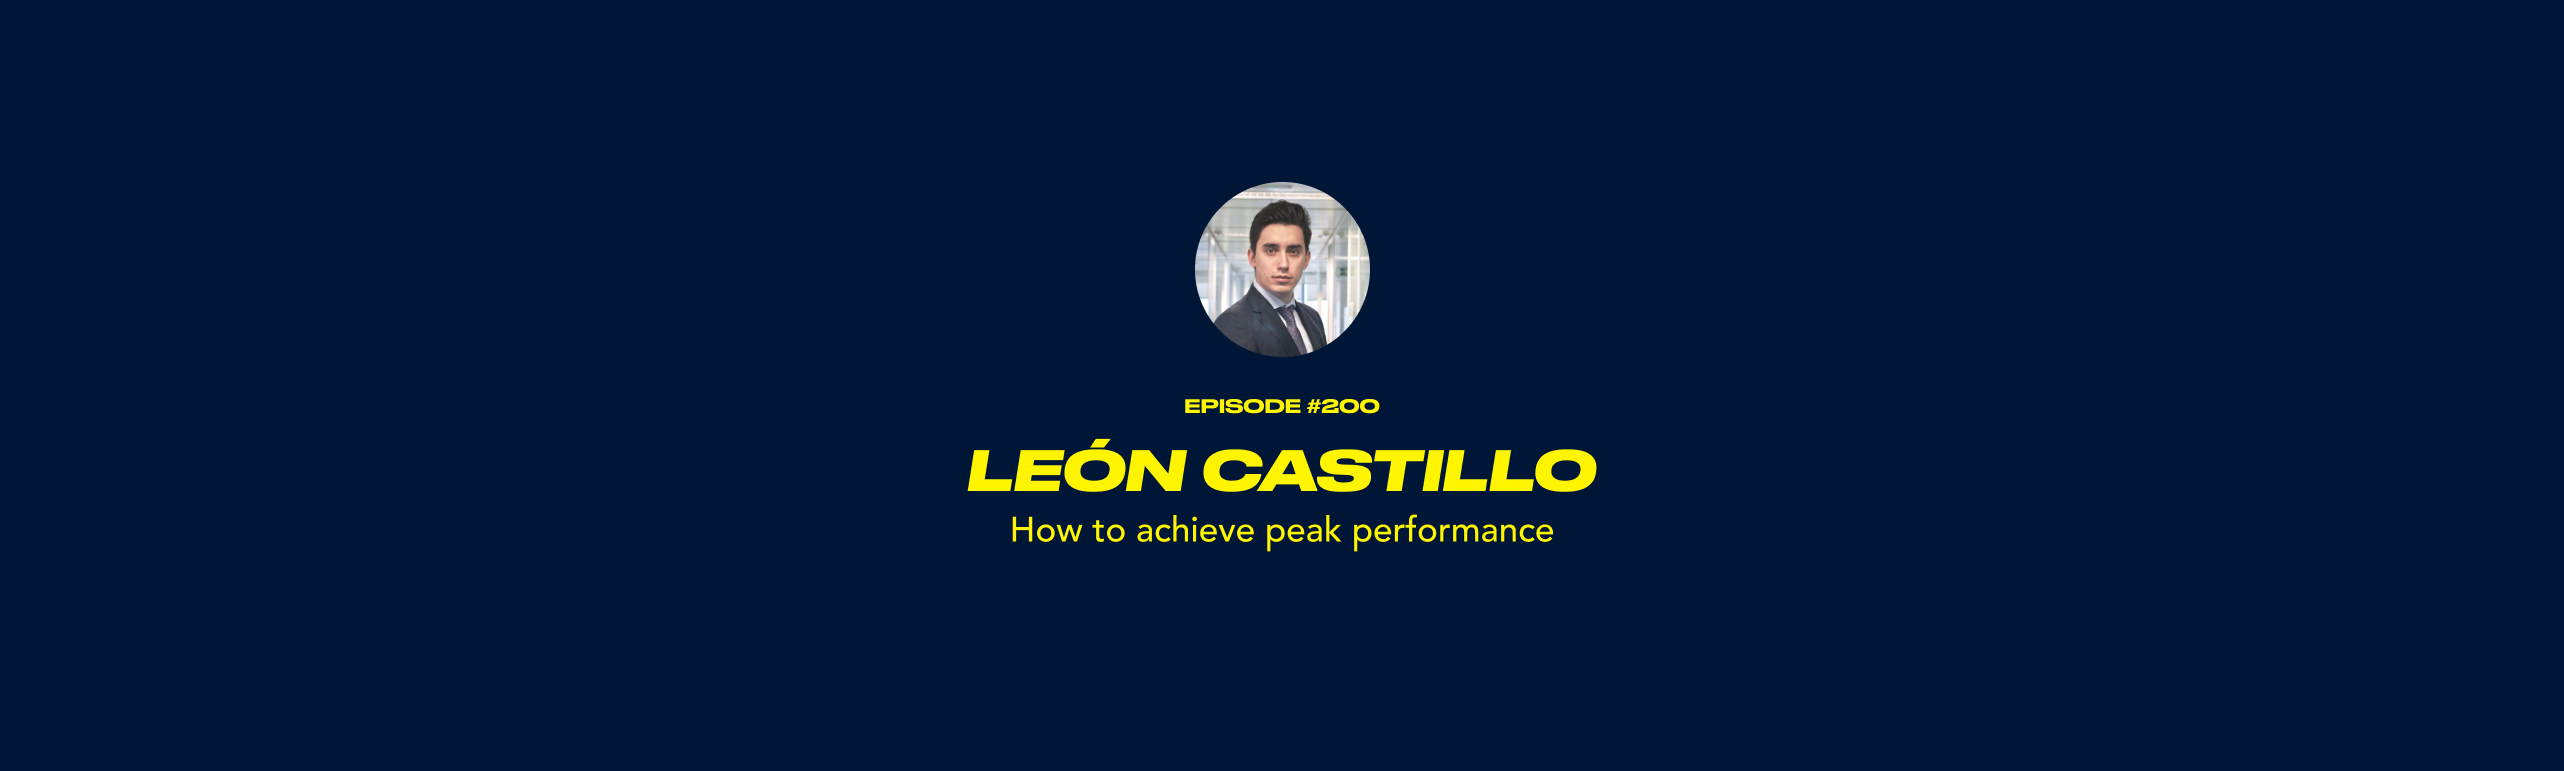 León Castillo - How to achieve peak performance